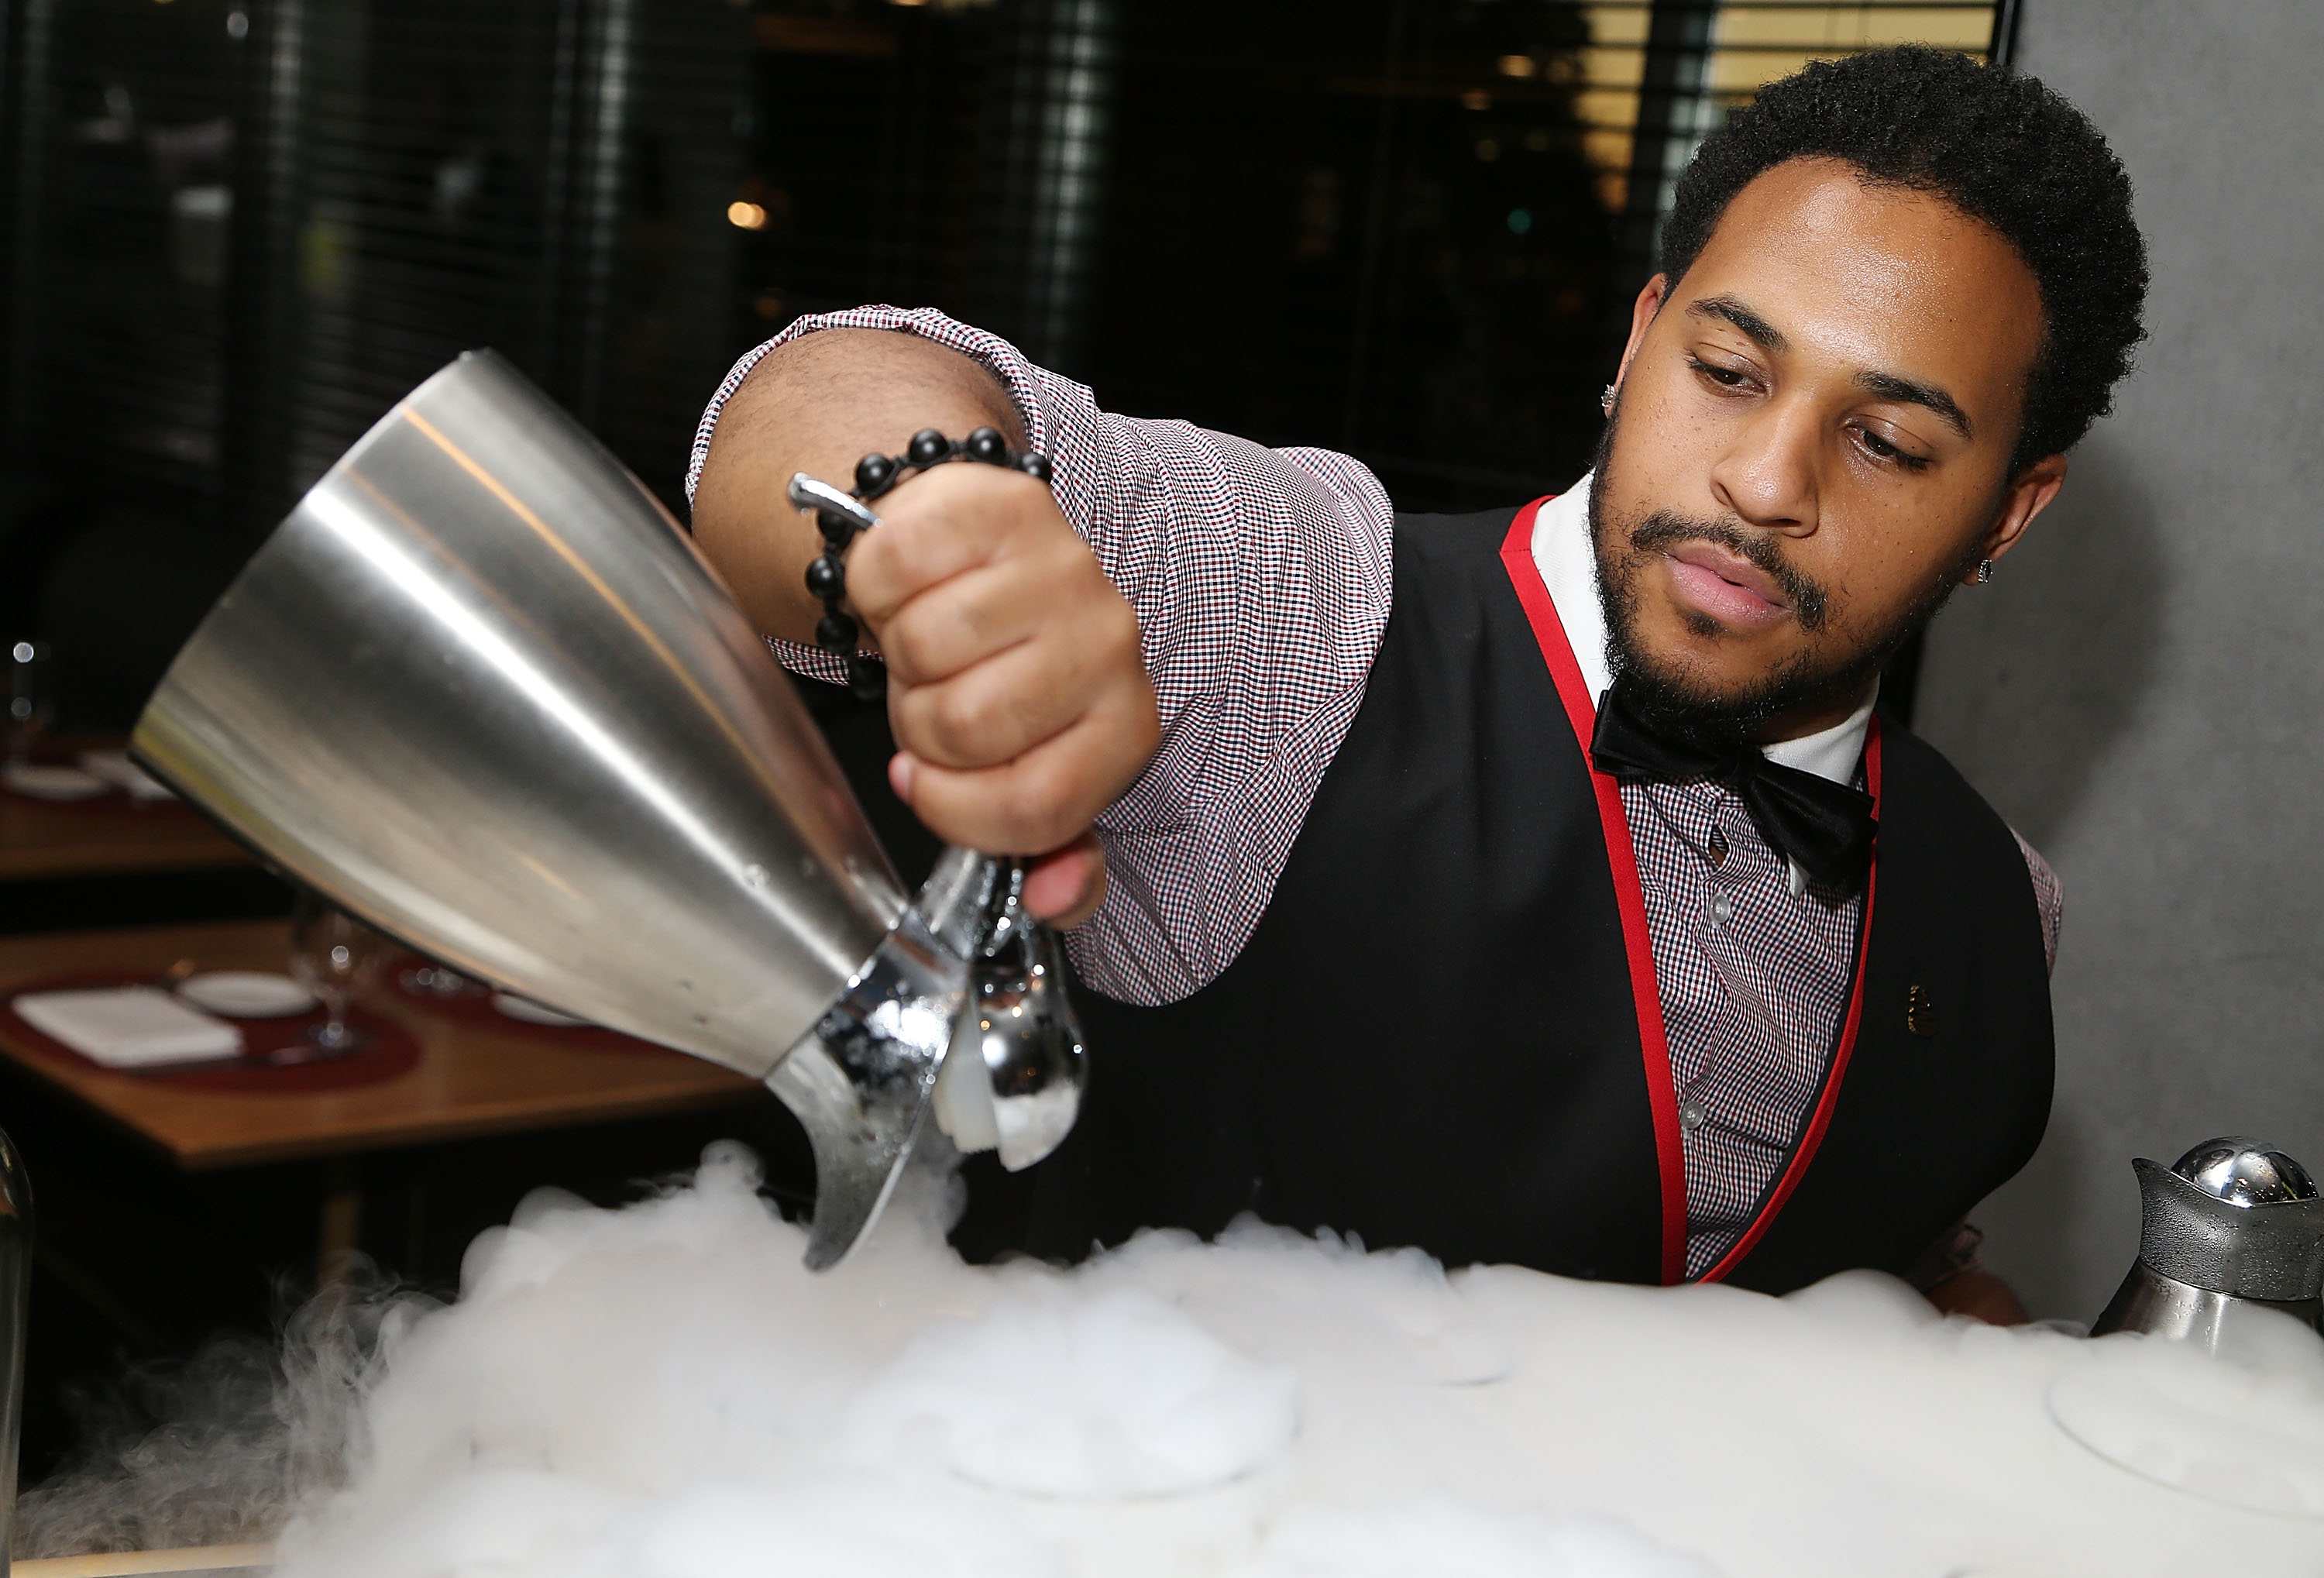 WASHINGTON, DC - JUNE 14: Specialty cocktails being made at the opening of Kingbird restaurant at the iconic Watergate Hotel on June 14, 2016 in Washington, DC.  (Photo by Paul Morigi/Getty Images for The Watergate Hotel)